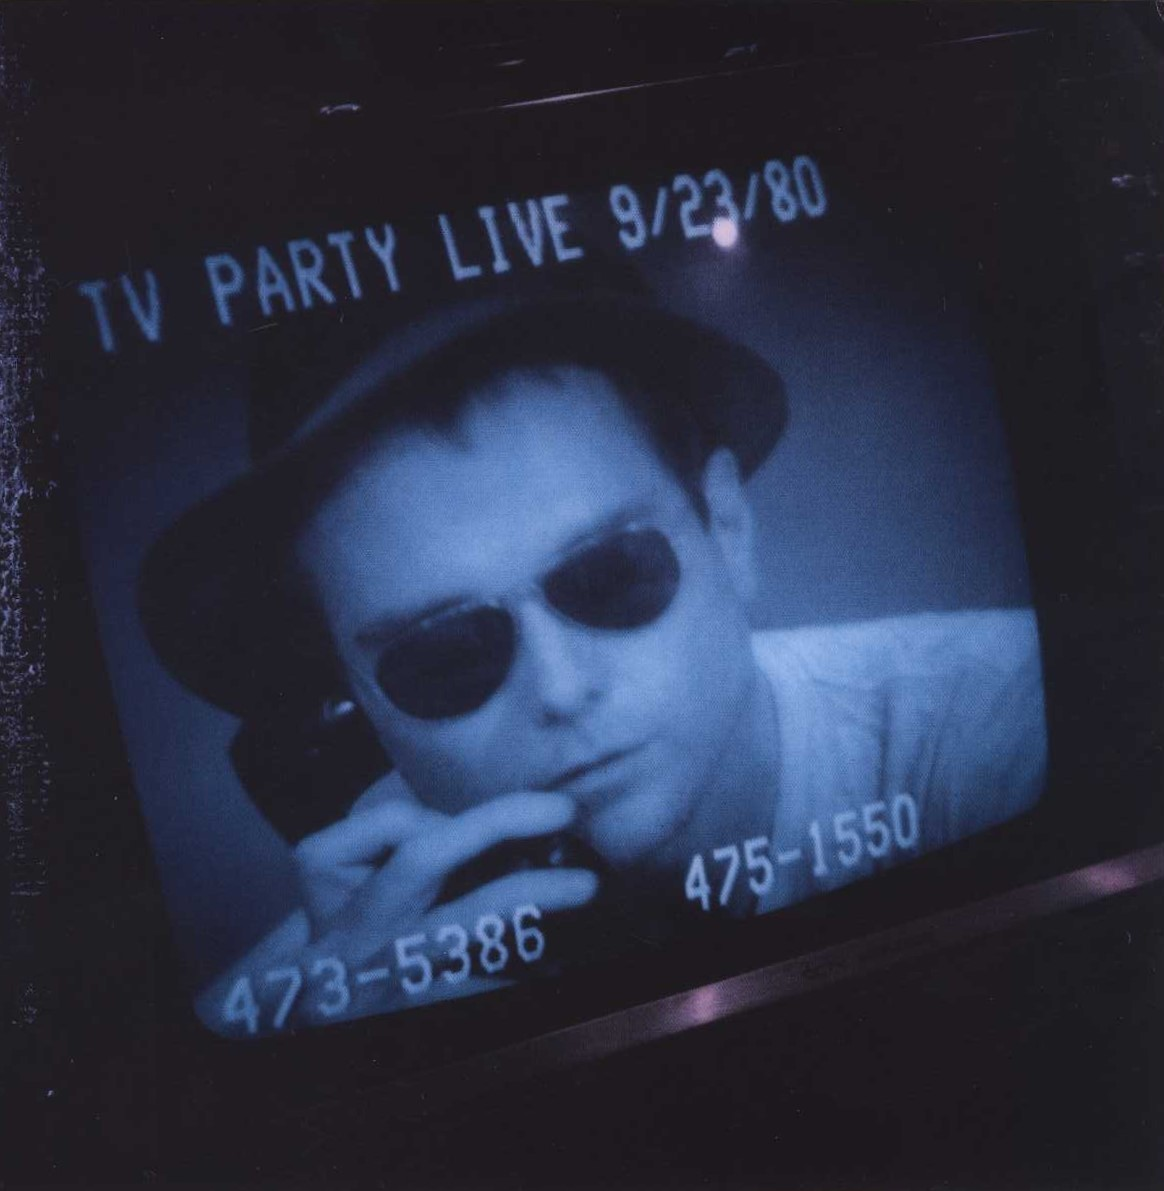 GLEN O'BRIEN | TV PARTY | POLAROID BY MARIPOL | 1980